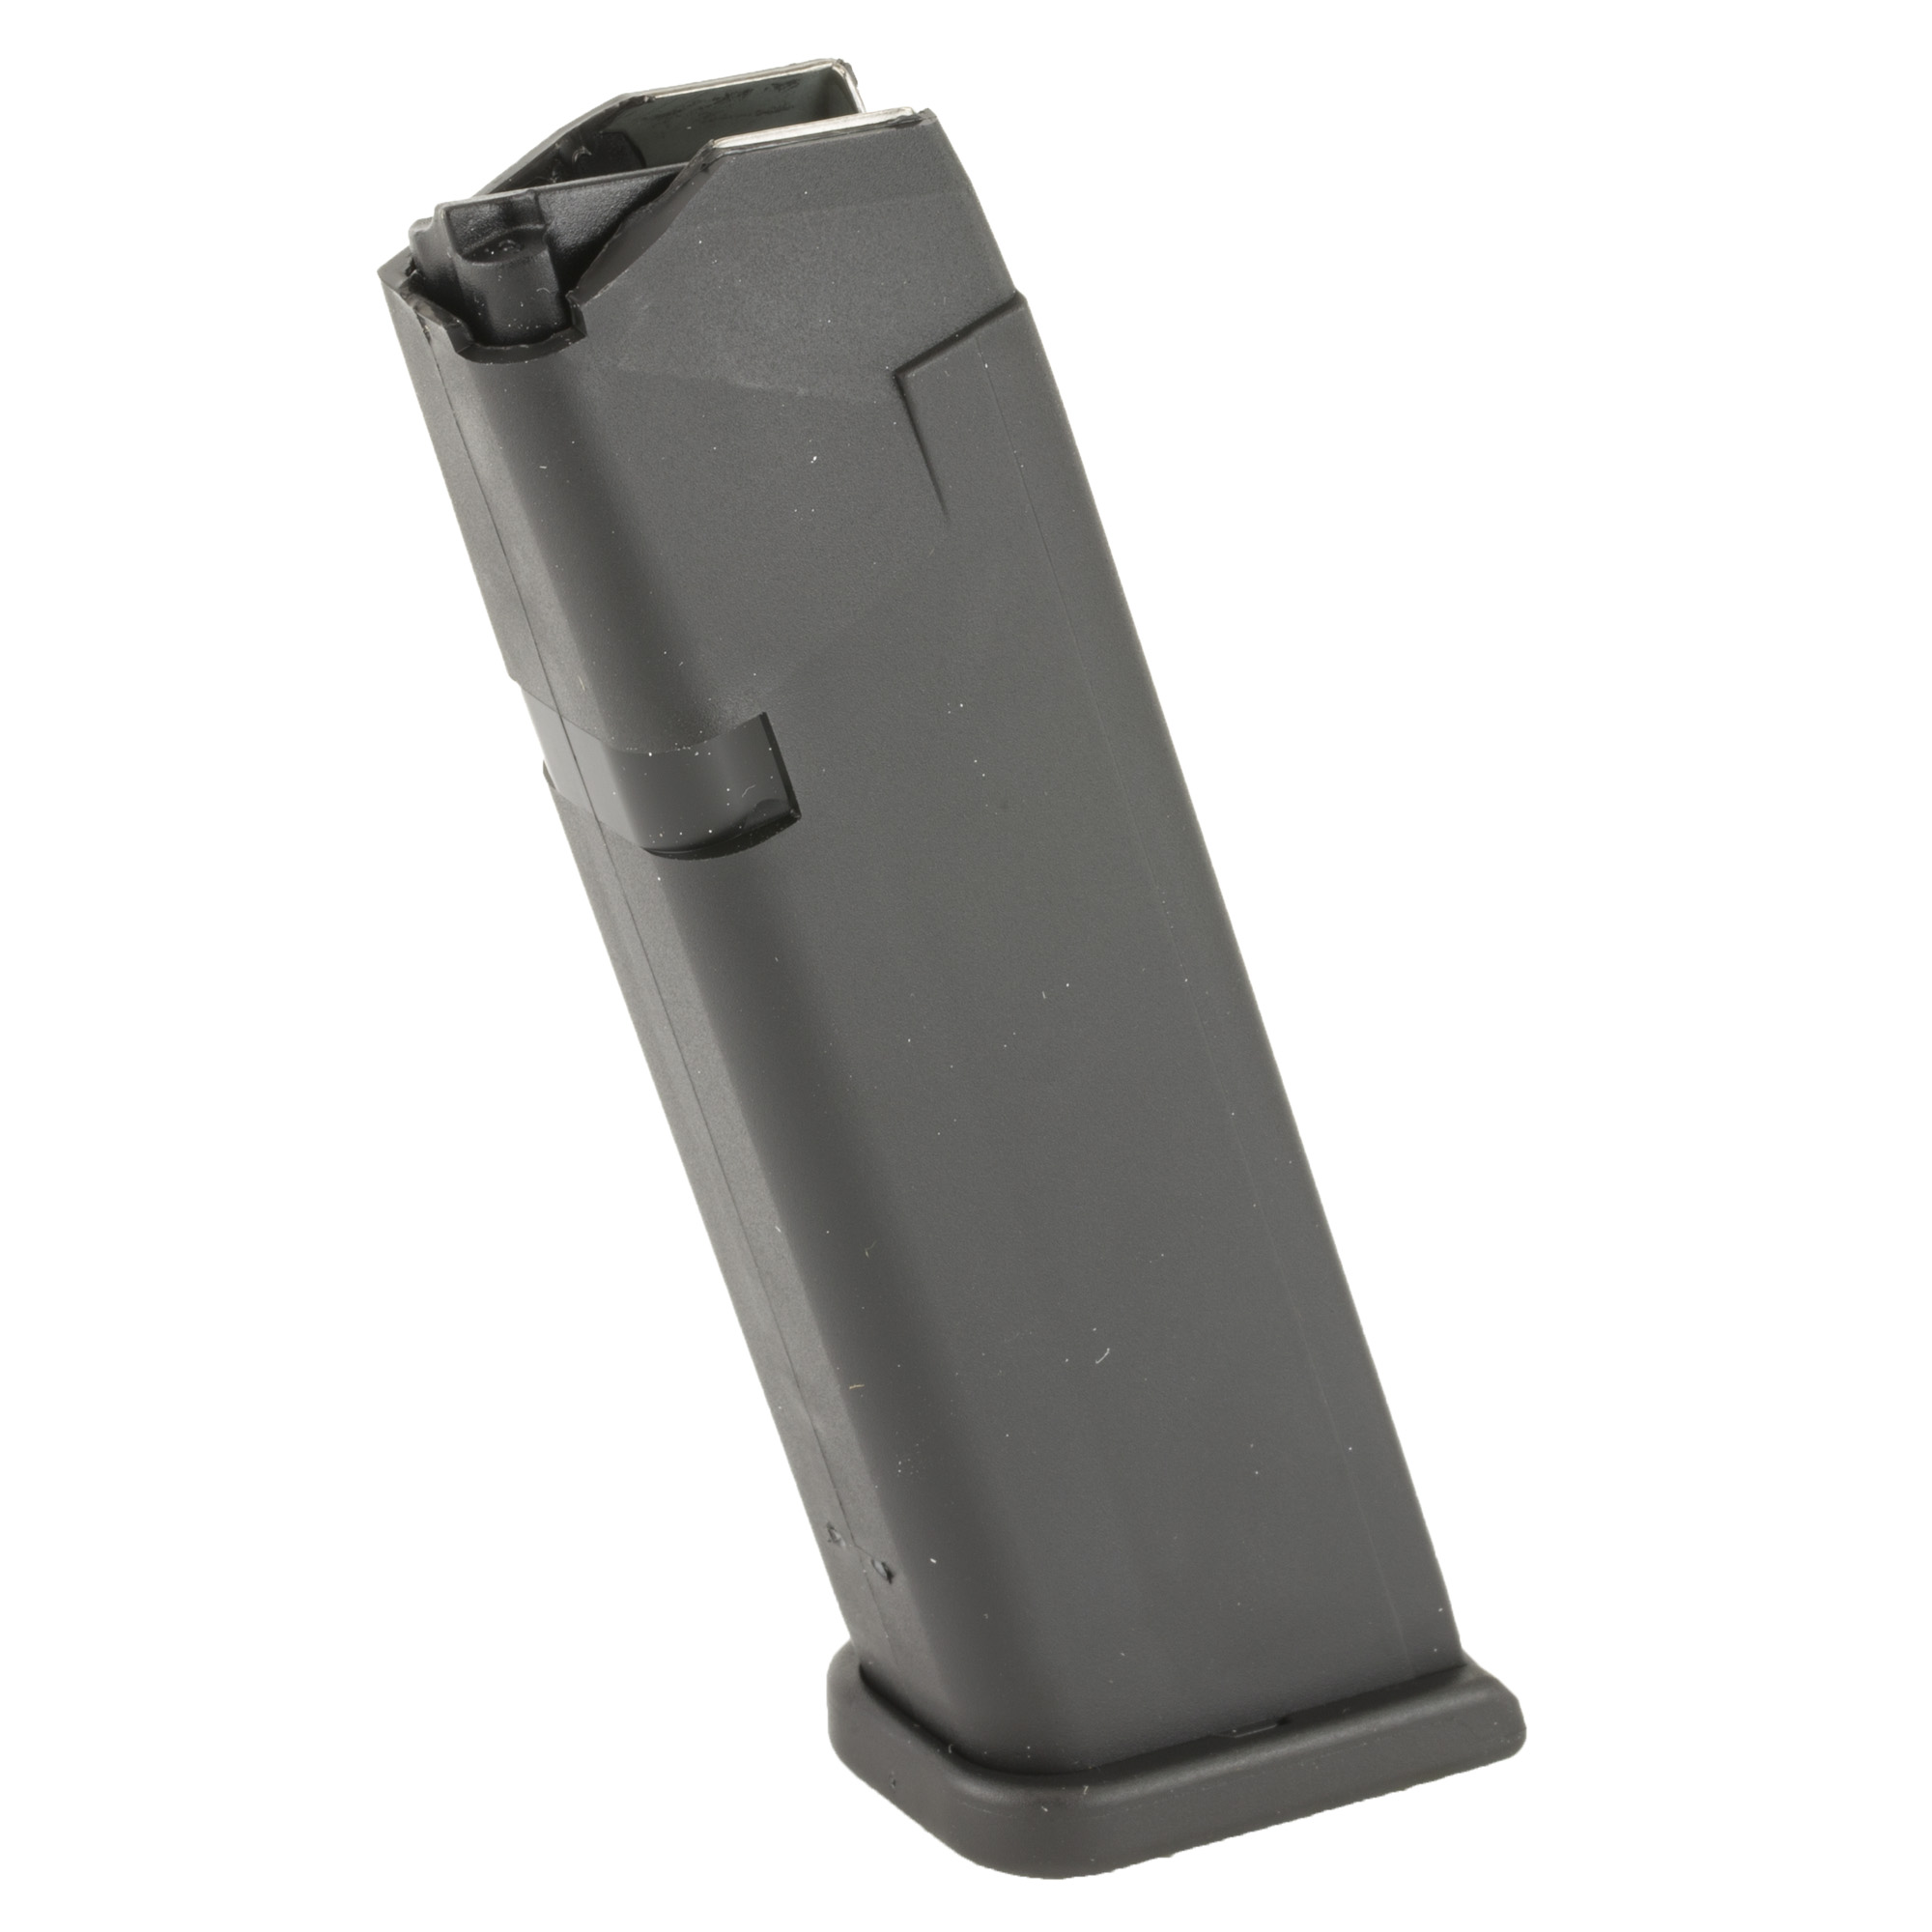 "Each GLOCK magazine is constructed from a hardened steel insert encased in high tech polymer to protect the magazine and prevent deformation"" even when dropped from a great height. The high quality spring and follower ensure reliable feeding from the first to the last shot."